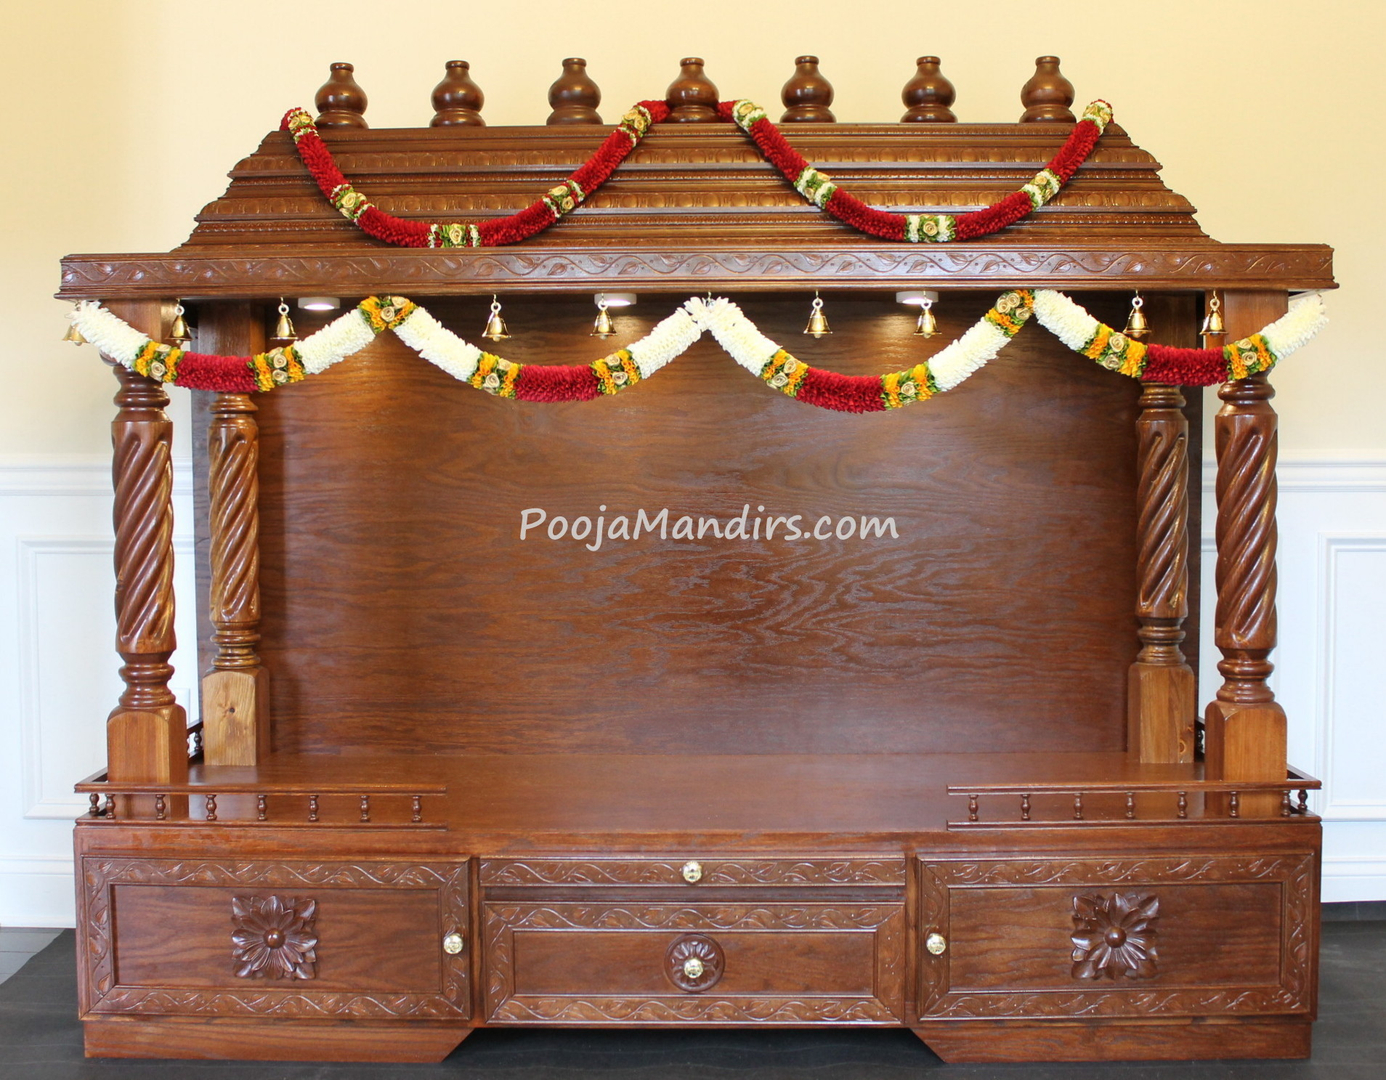 Stunning Wooden Pooja Mandir Designs For Home Pictures - Interior ...